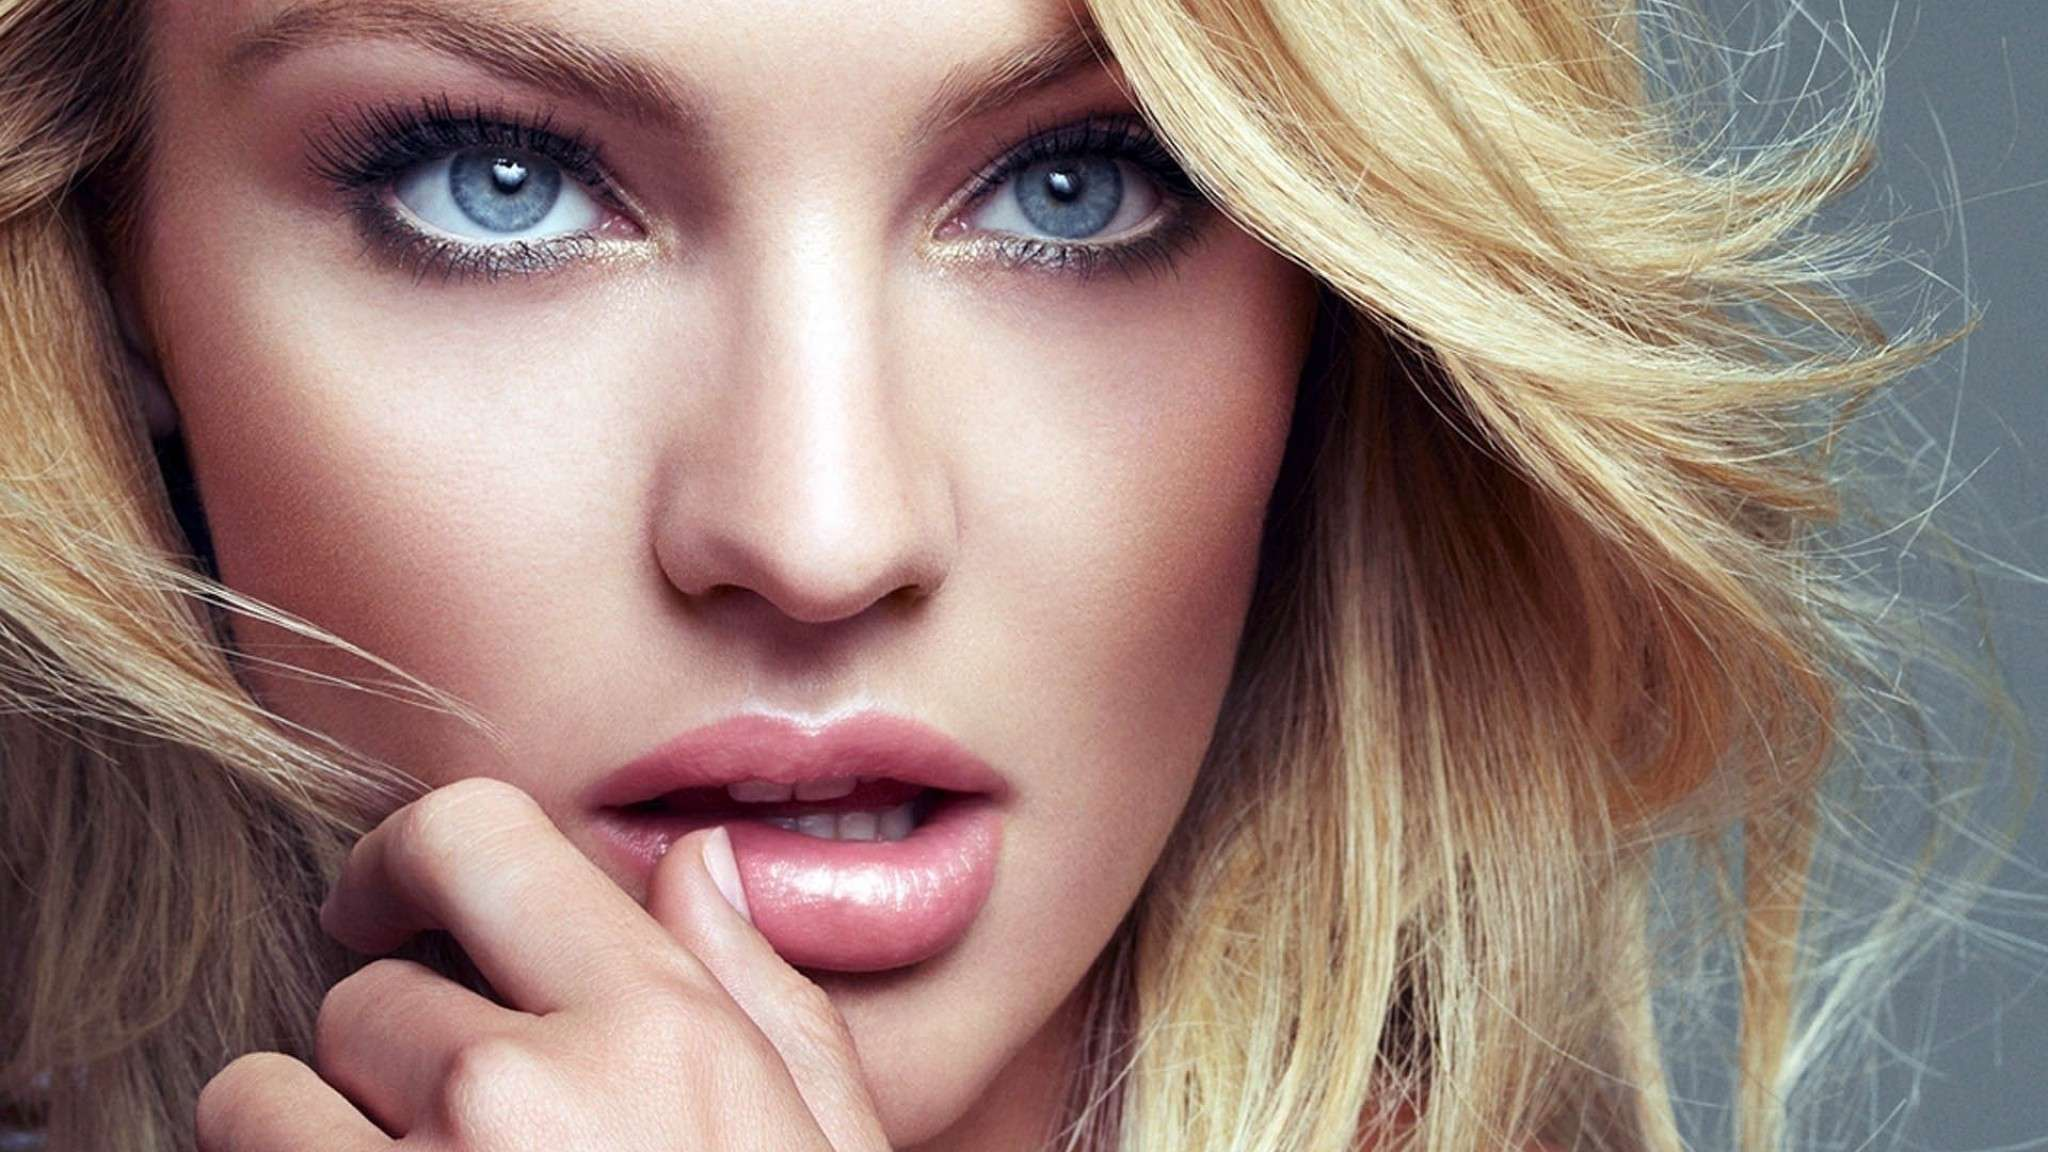 Candice Swanepoel Desktop wallpapers